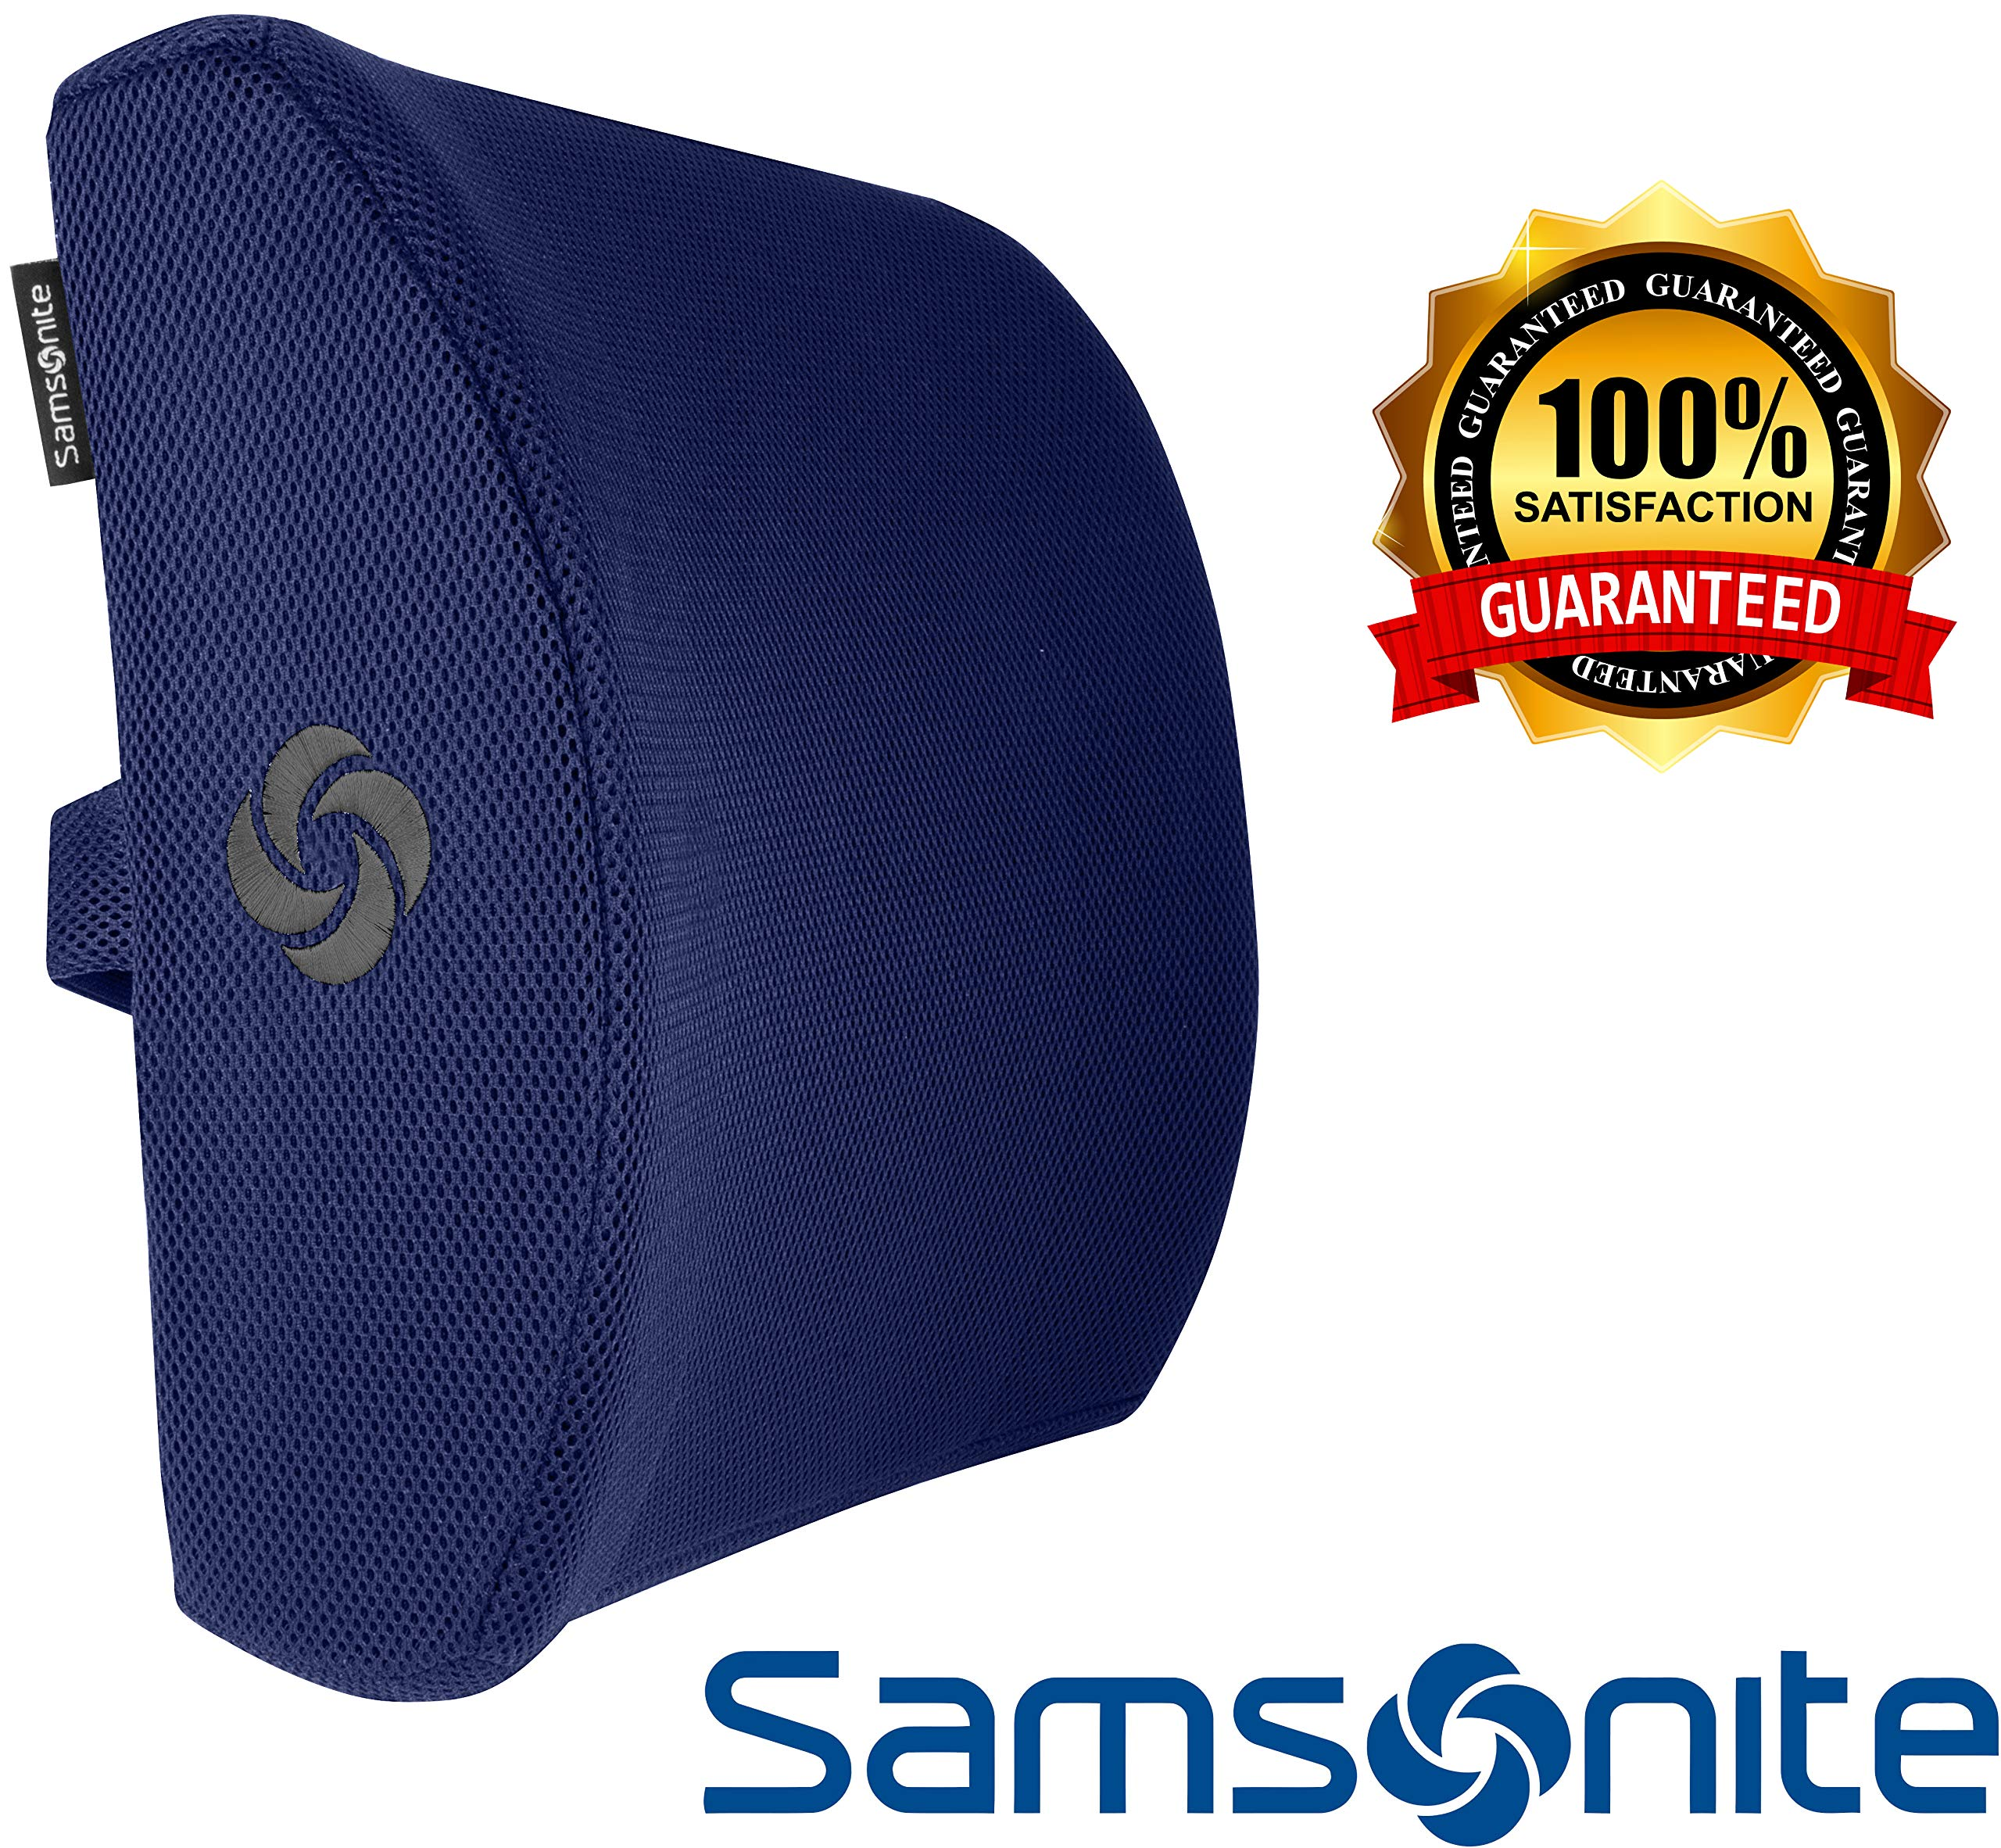 Samsonite SA5294 Lumbar Support/Navy Ergonomic Pillow-Helps Relieve Lower Back Pain-100% Pure Memory Foam-Improves Posture-Fits Most Seats-Breathable Mesh-Washable Cover-Adjustable Strap